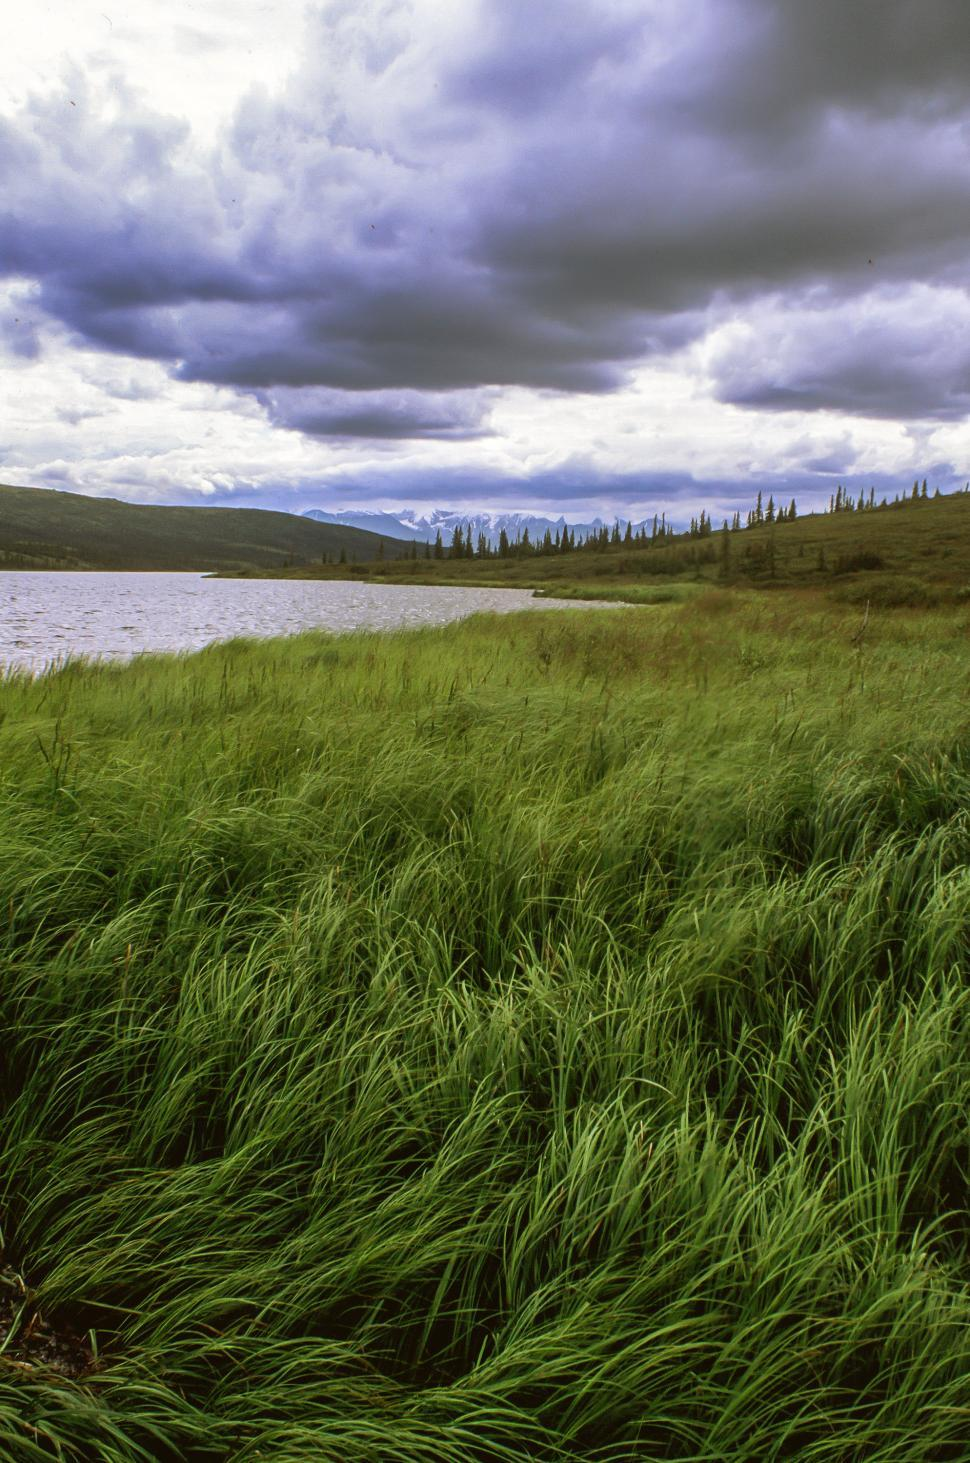 Download Free Stock HD Photo of Marsh grass Online